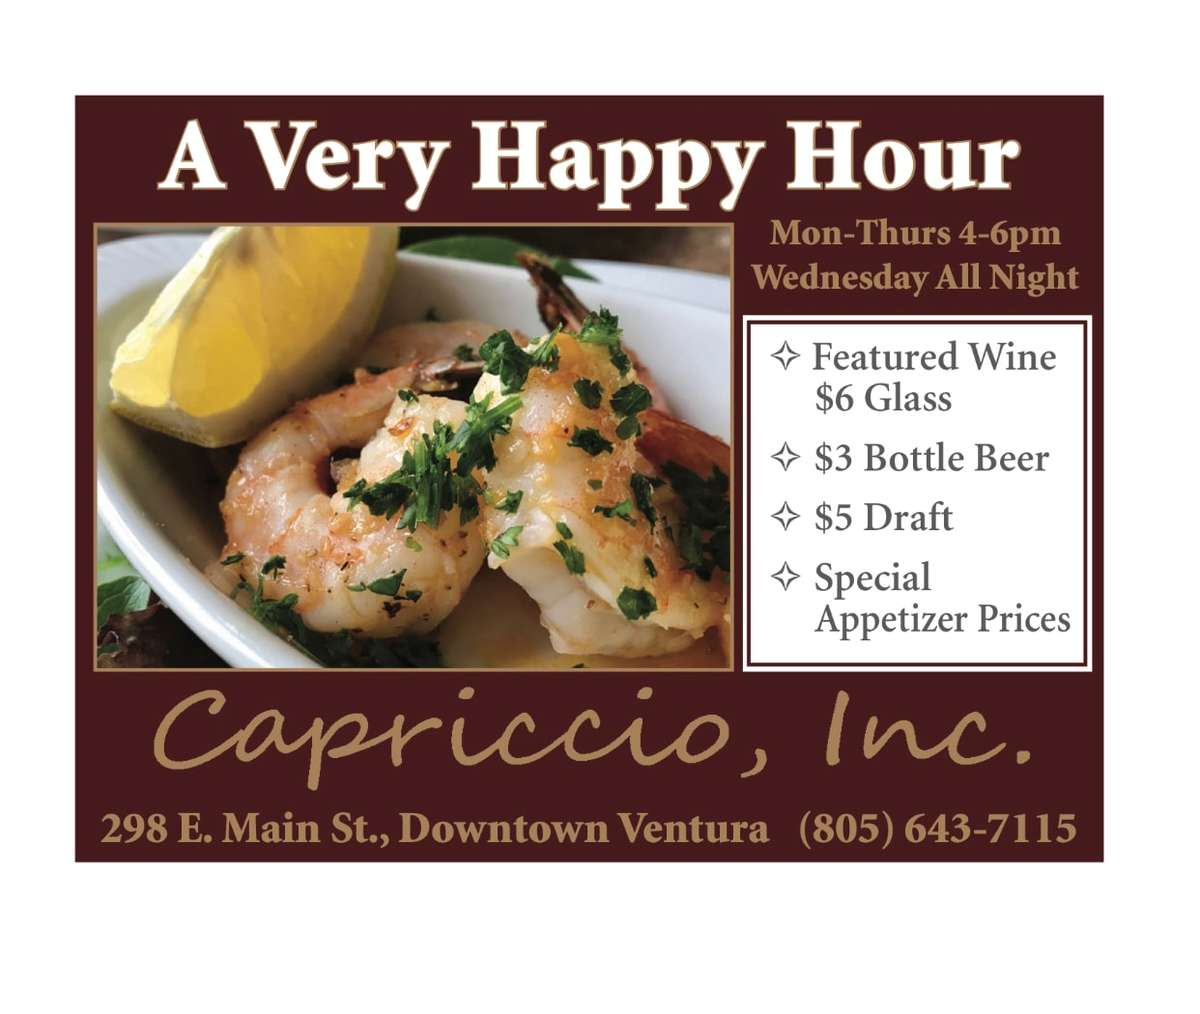 Happy Hour Monday through Thursday 4 to 6